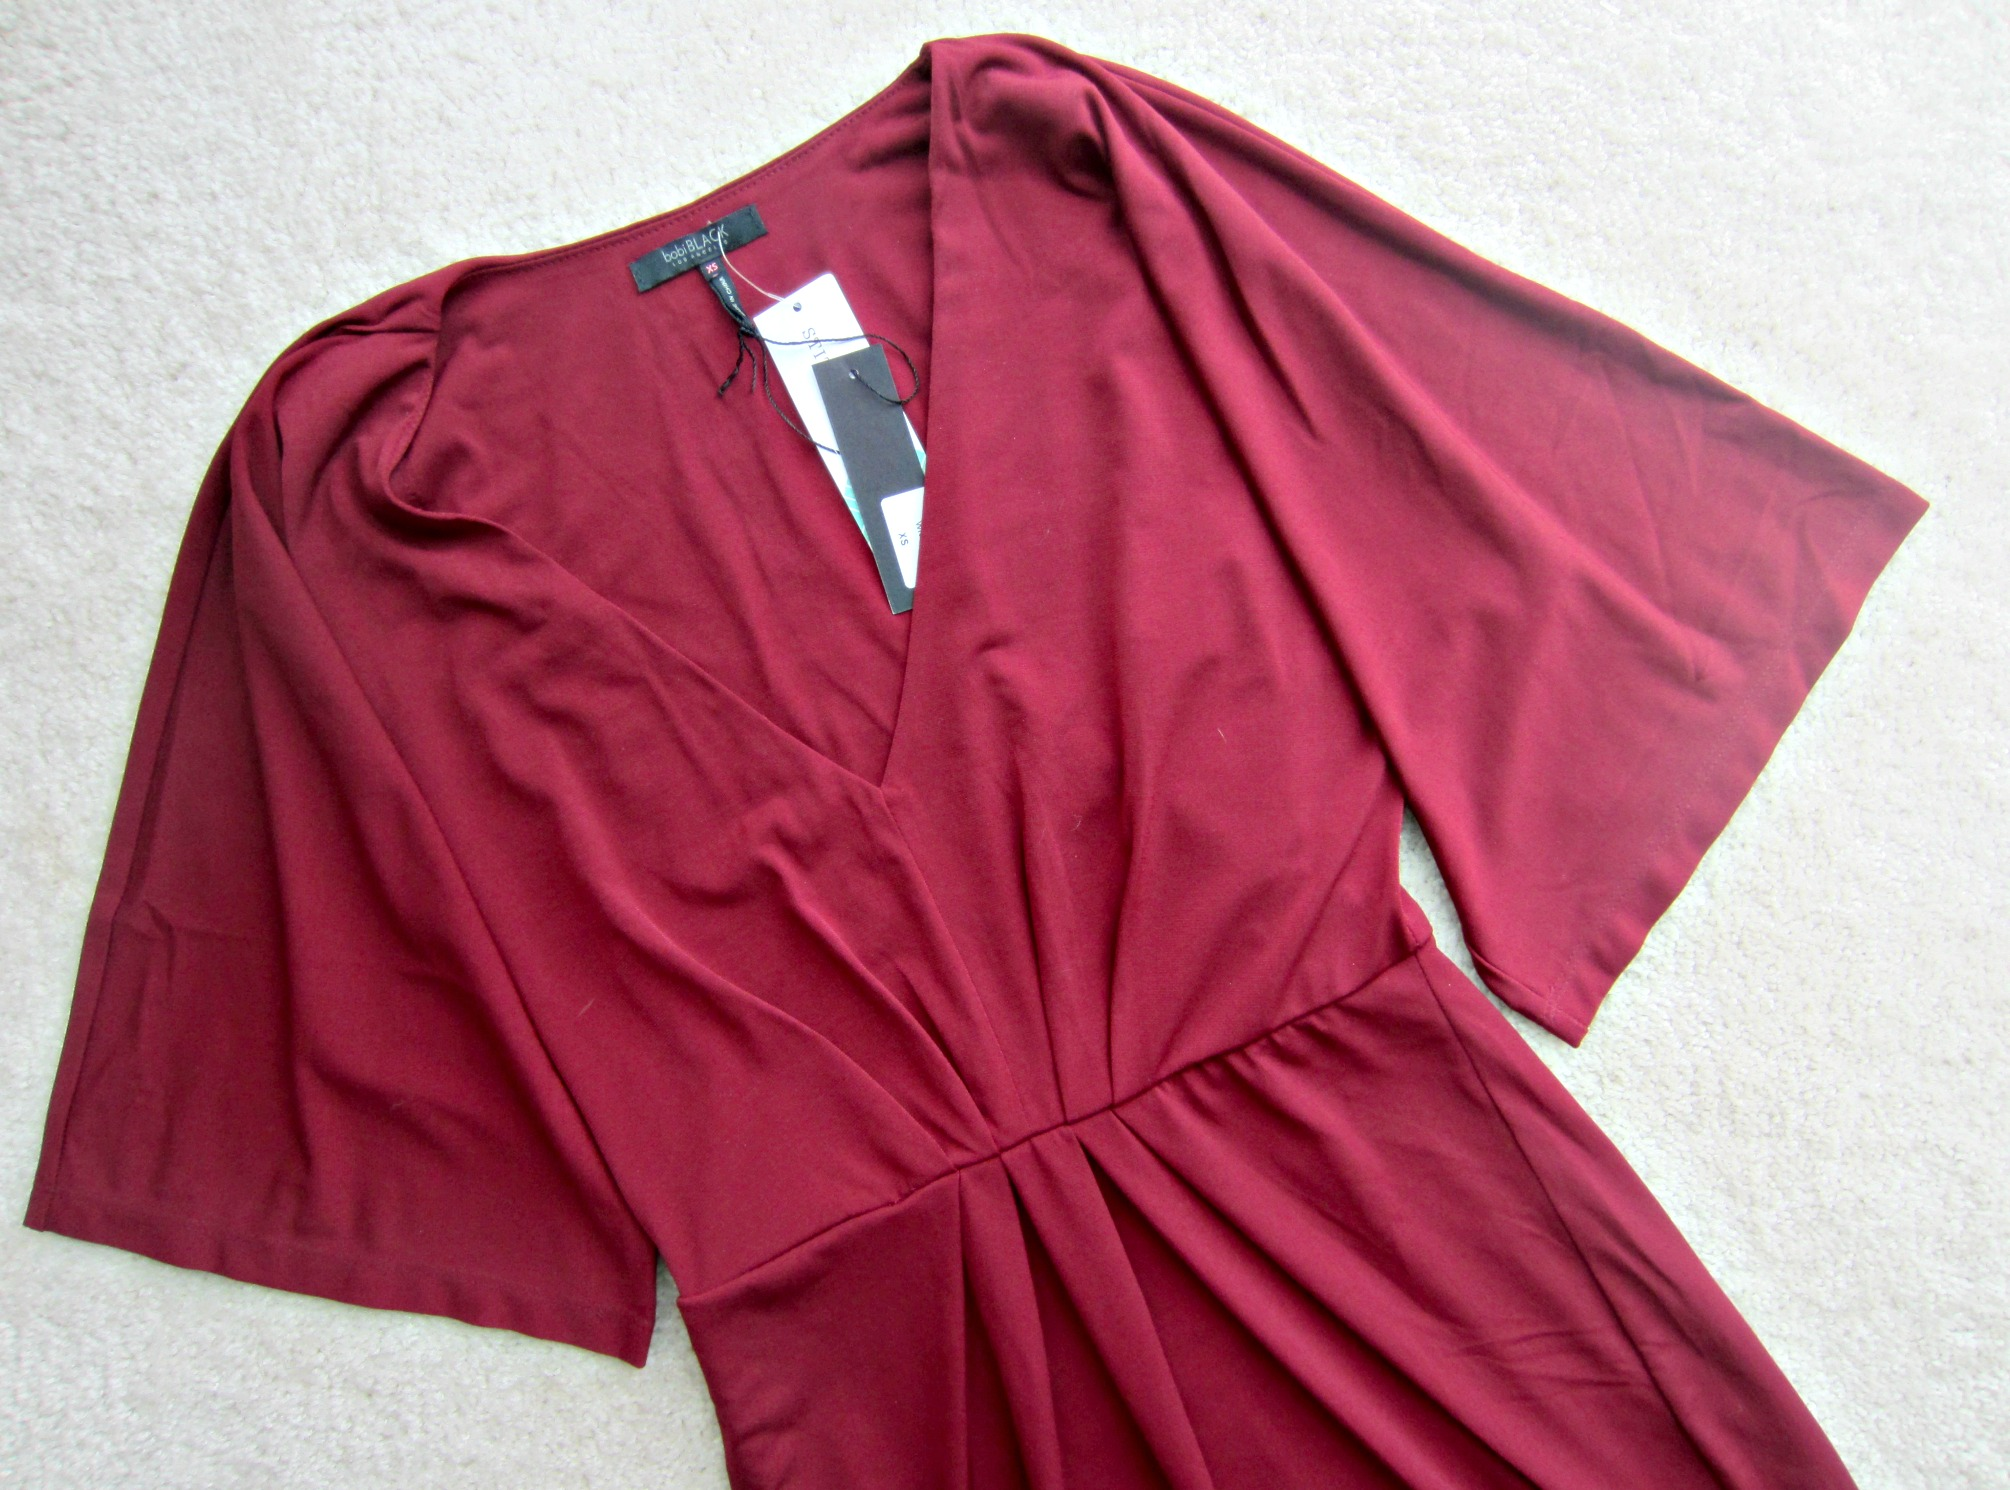 stitch fix red dress close up